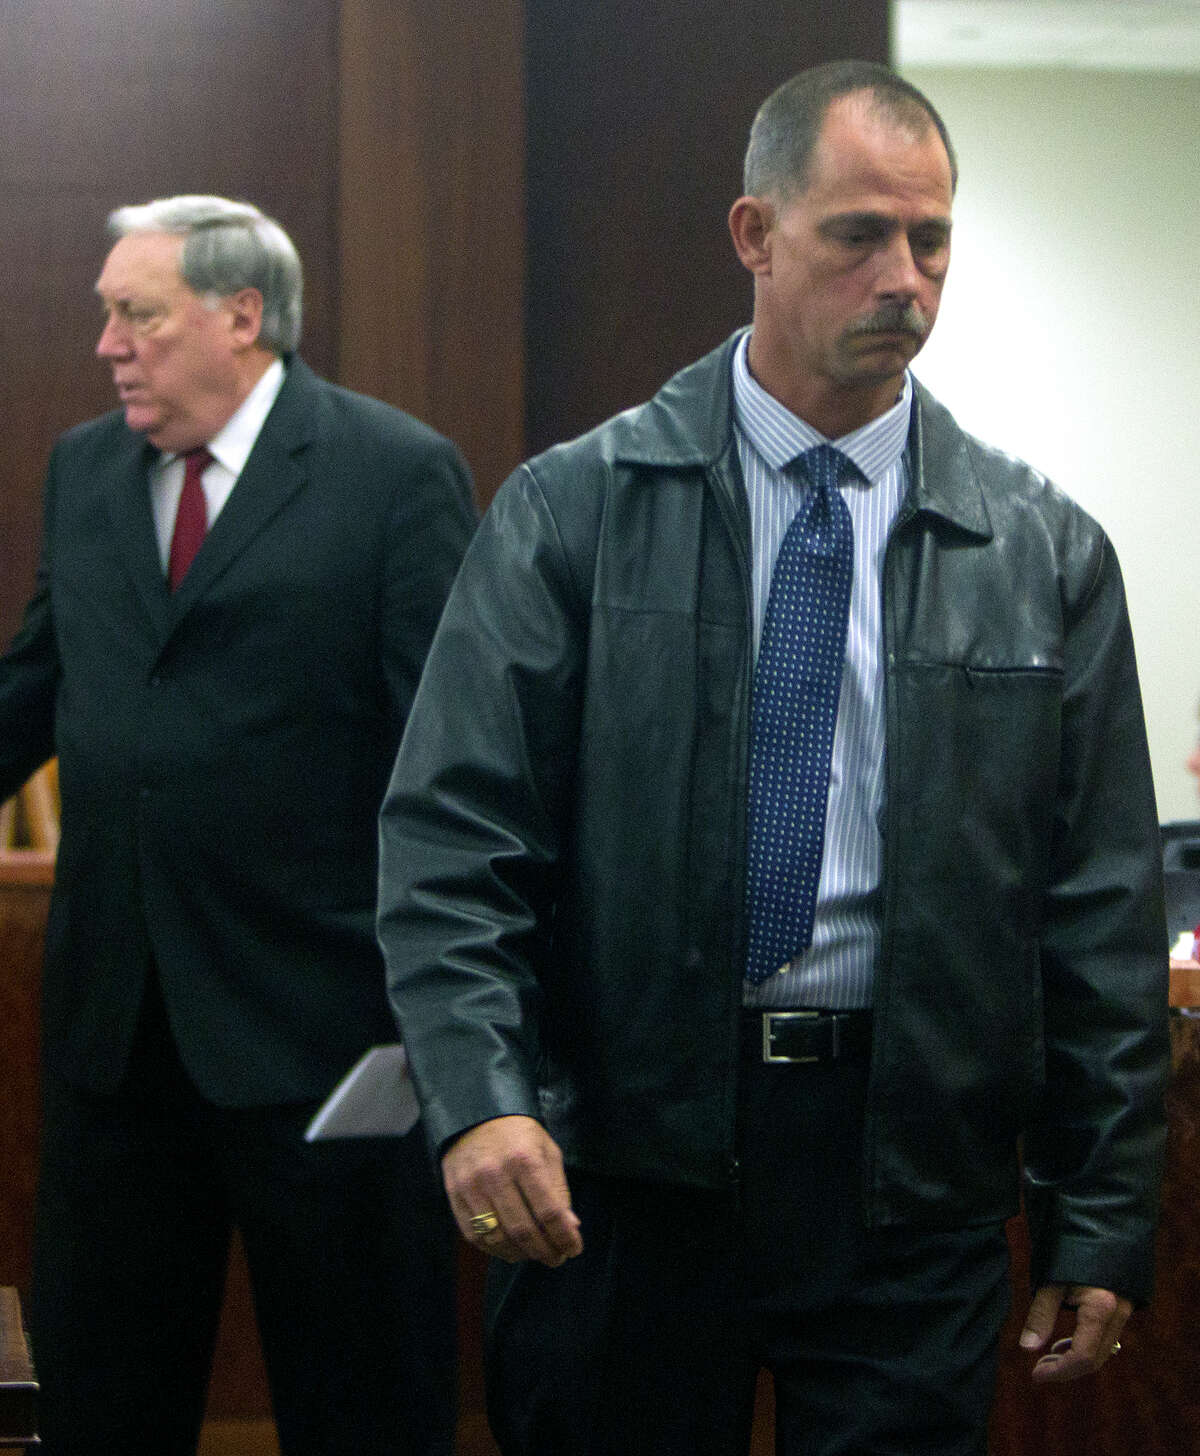 Former Deputy Donald Wayne Tipps leaves court after appearing Thursday, Dec. 19, 2013, in Houston. The former Harris County Sheriff's Deputy was indicted for sexual assault and official oppression, accused of coercing a woman into sex instead of arresting her for an open warrant.